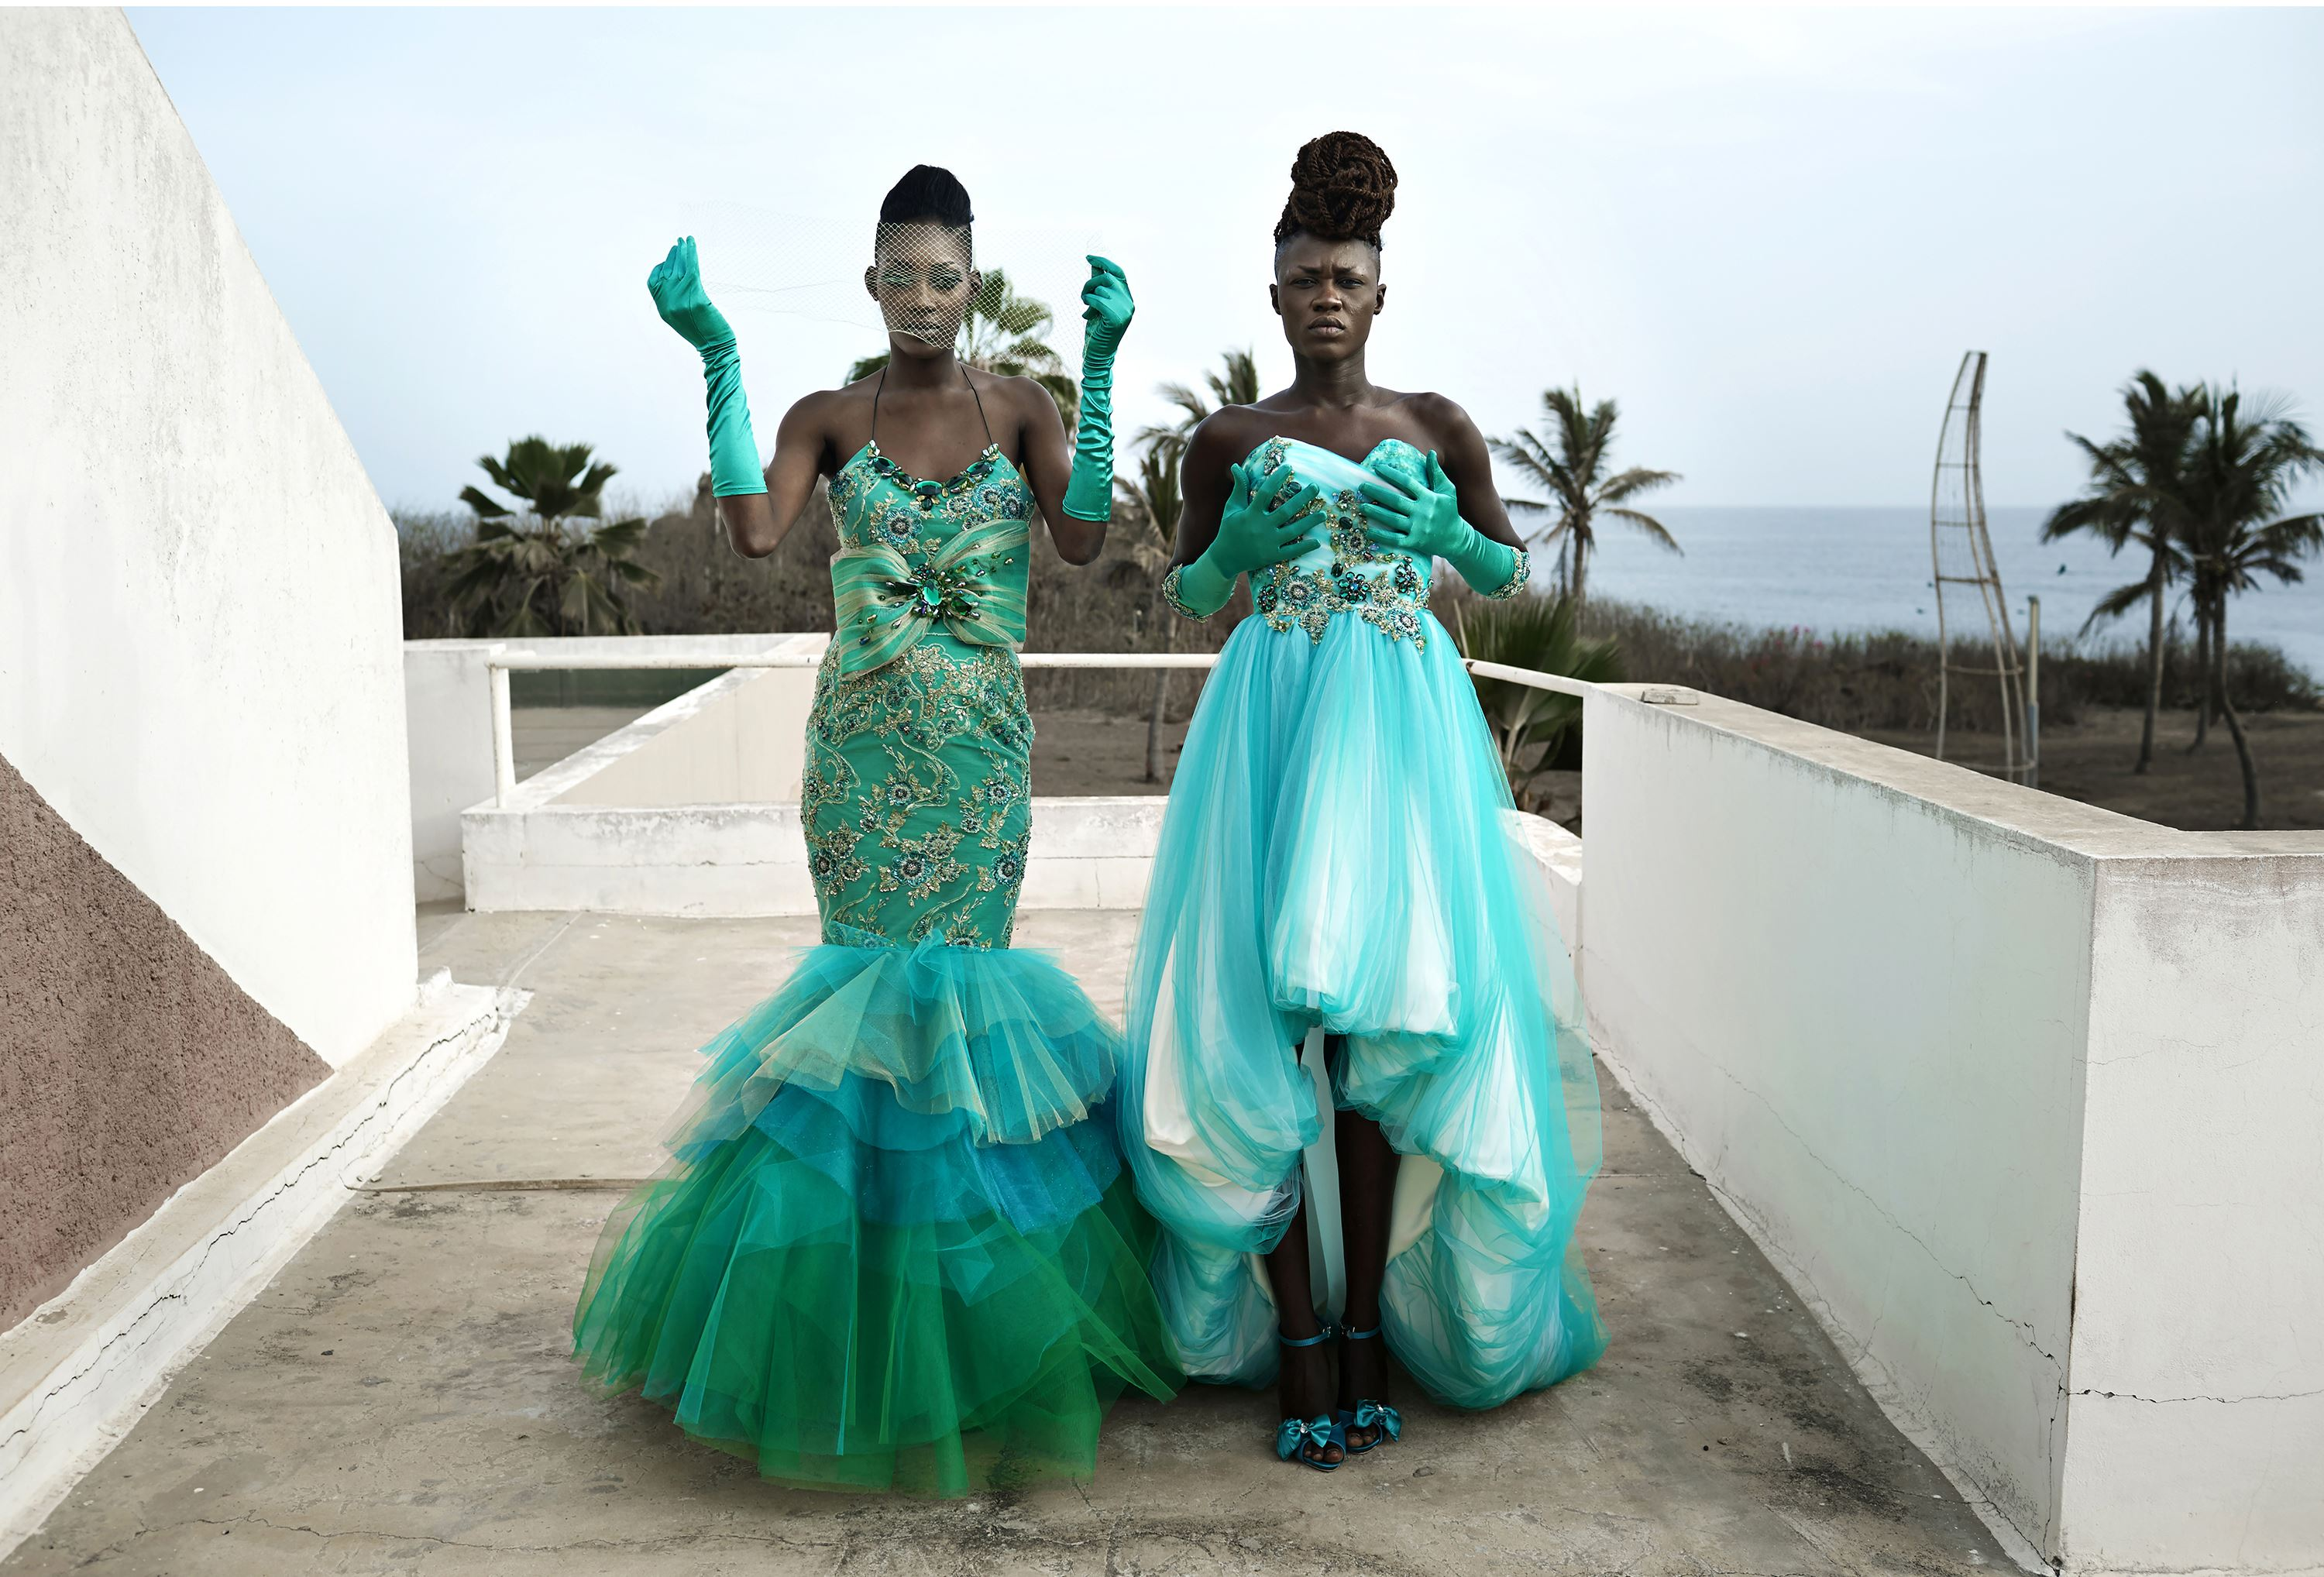 Per-Anders Pettersson, African catwalk // Per-Anders Pettersson